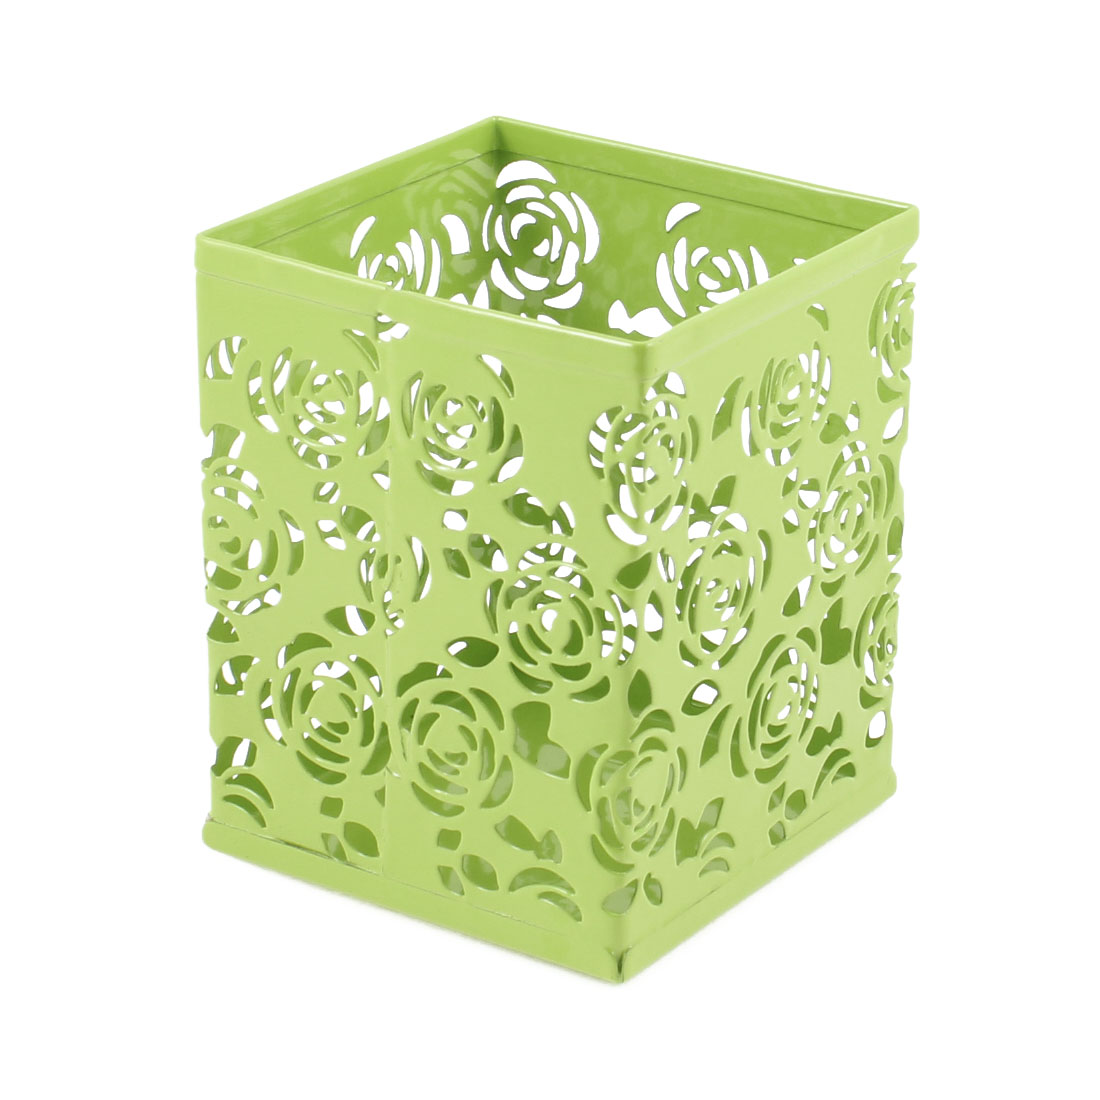 Light Green Hollow Rose Flower Square Metal Pen Pencil Pot Holder Organizer